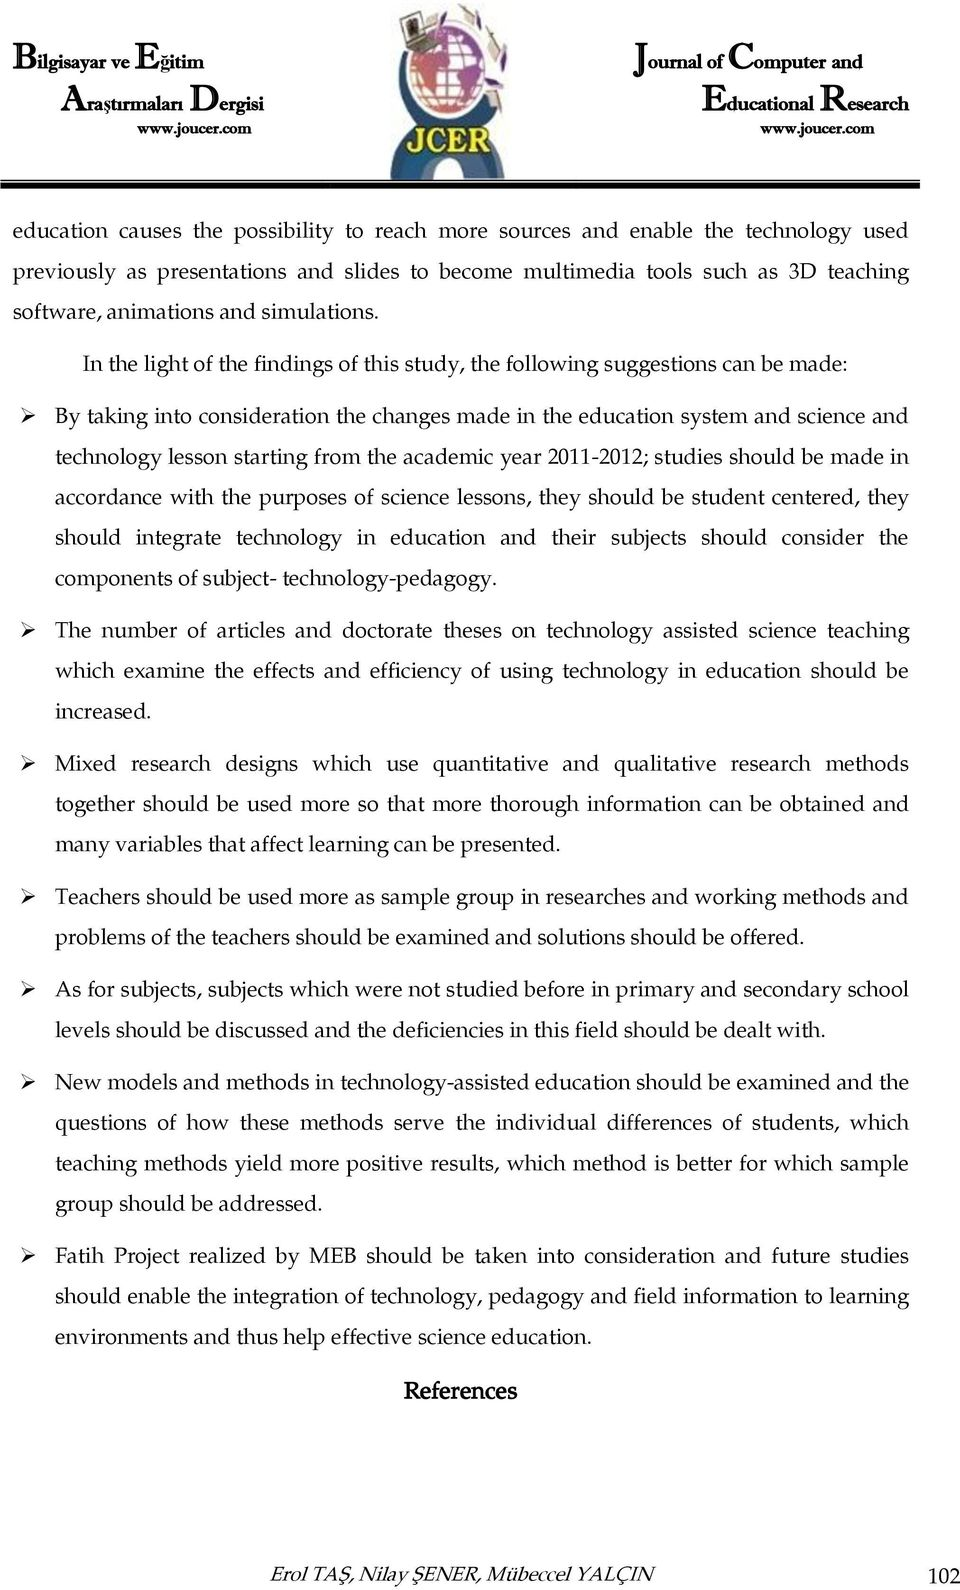 In the light of the findings of this study, the following suggestions can be made: By taking into consideration the changes made in the education system and science and technology lesson starting